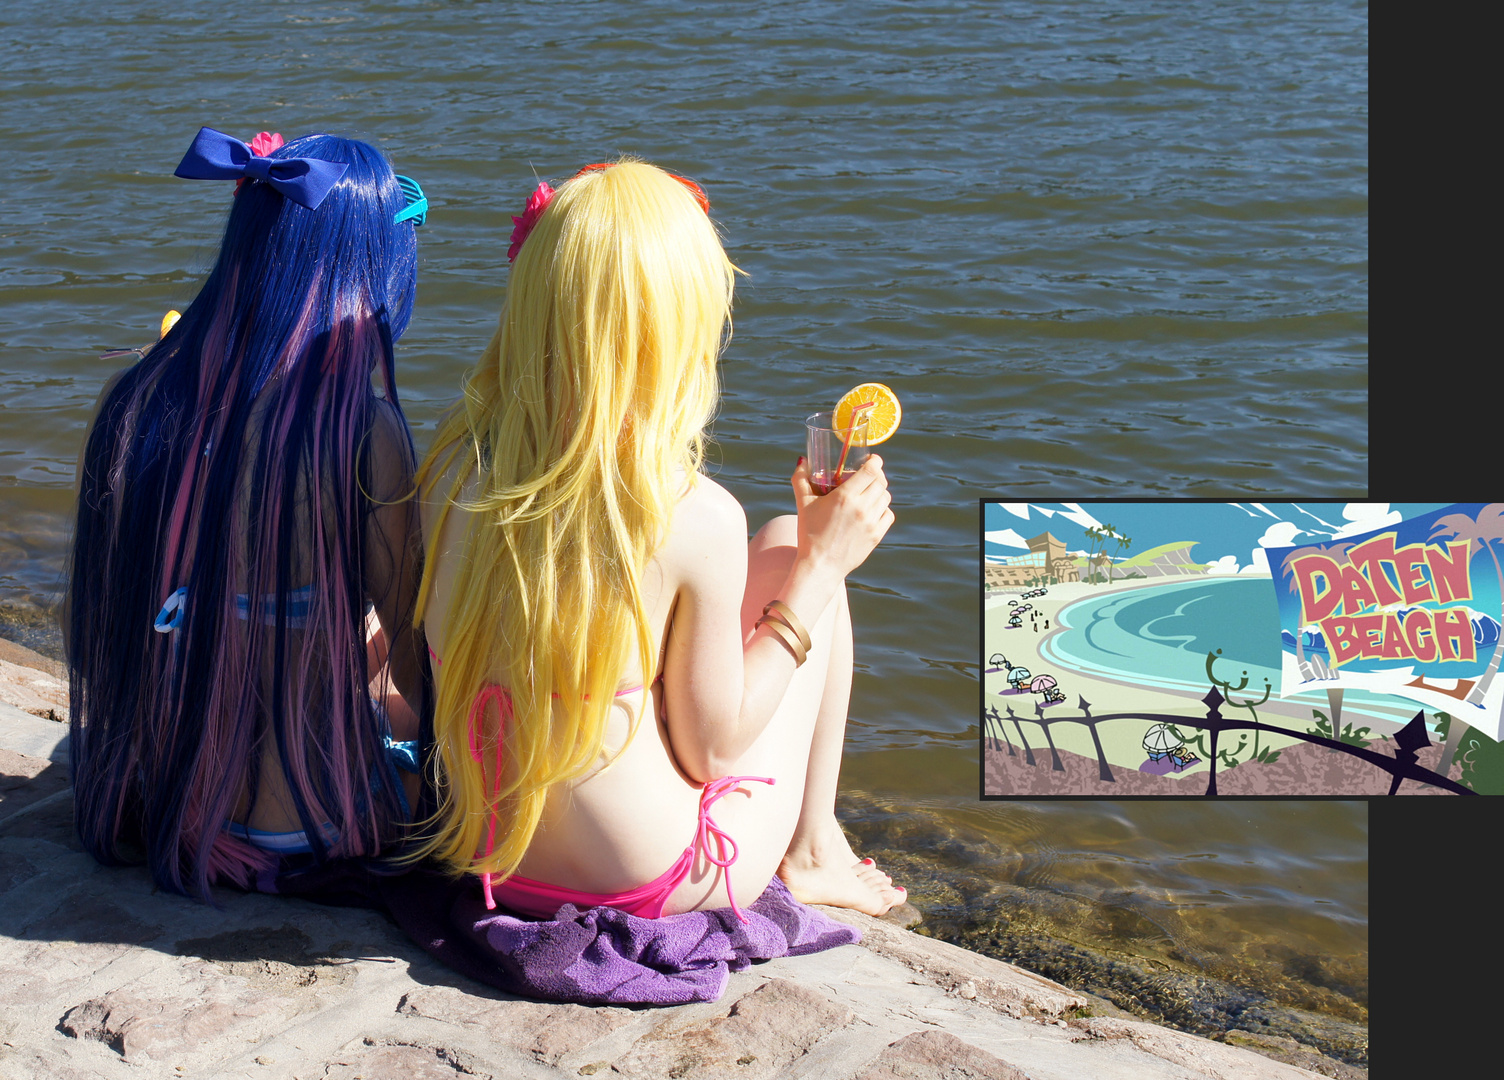 Panty & Stocking @ Daten Beach – Wait and see